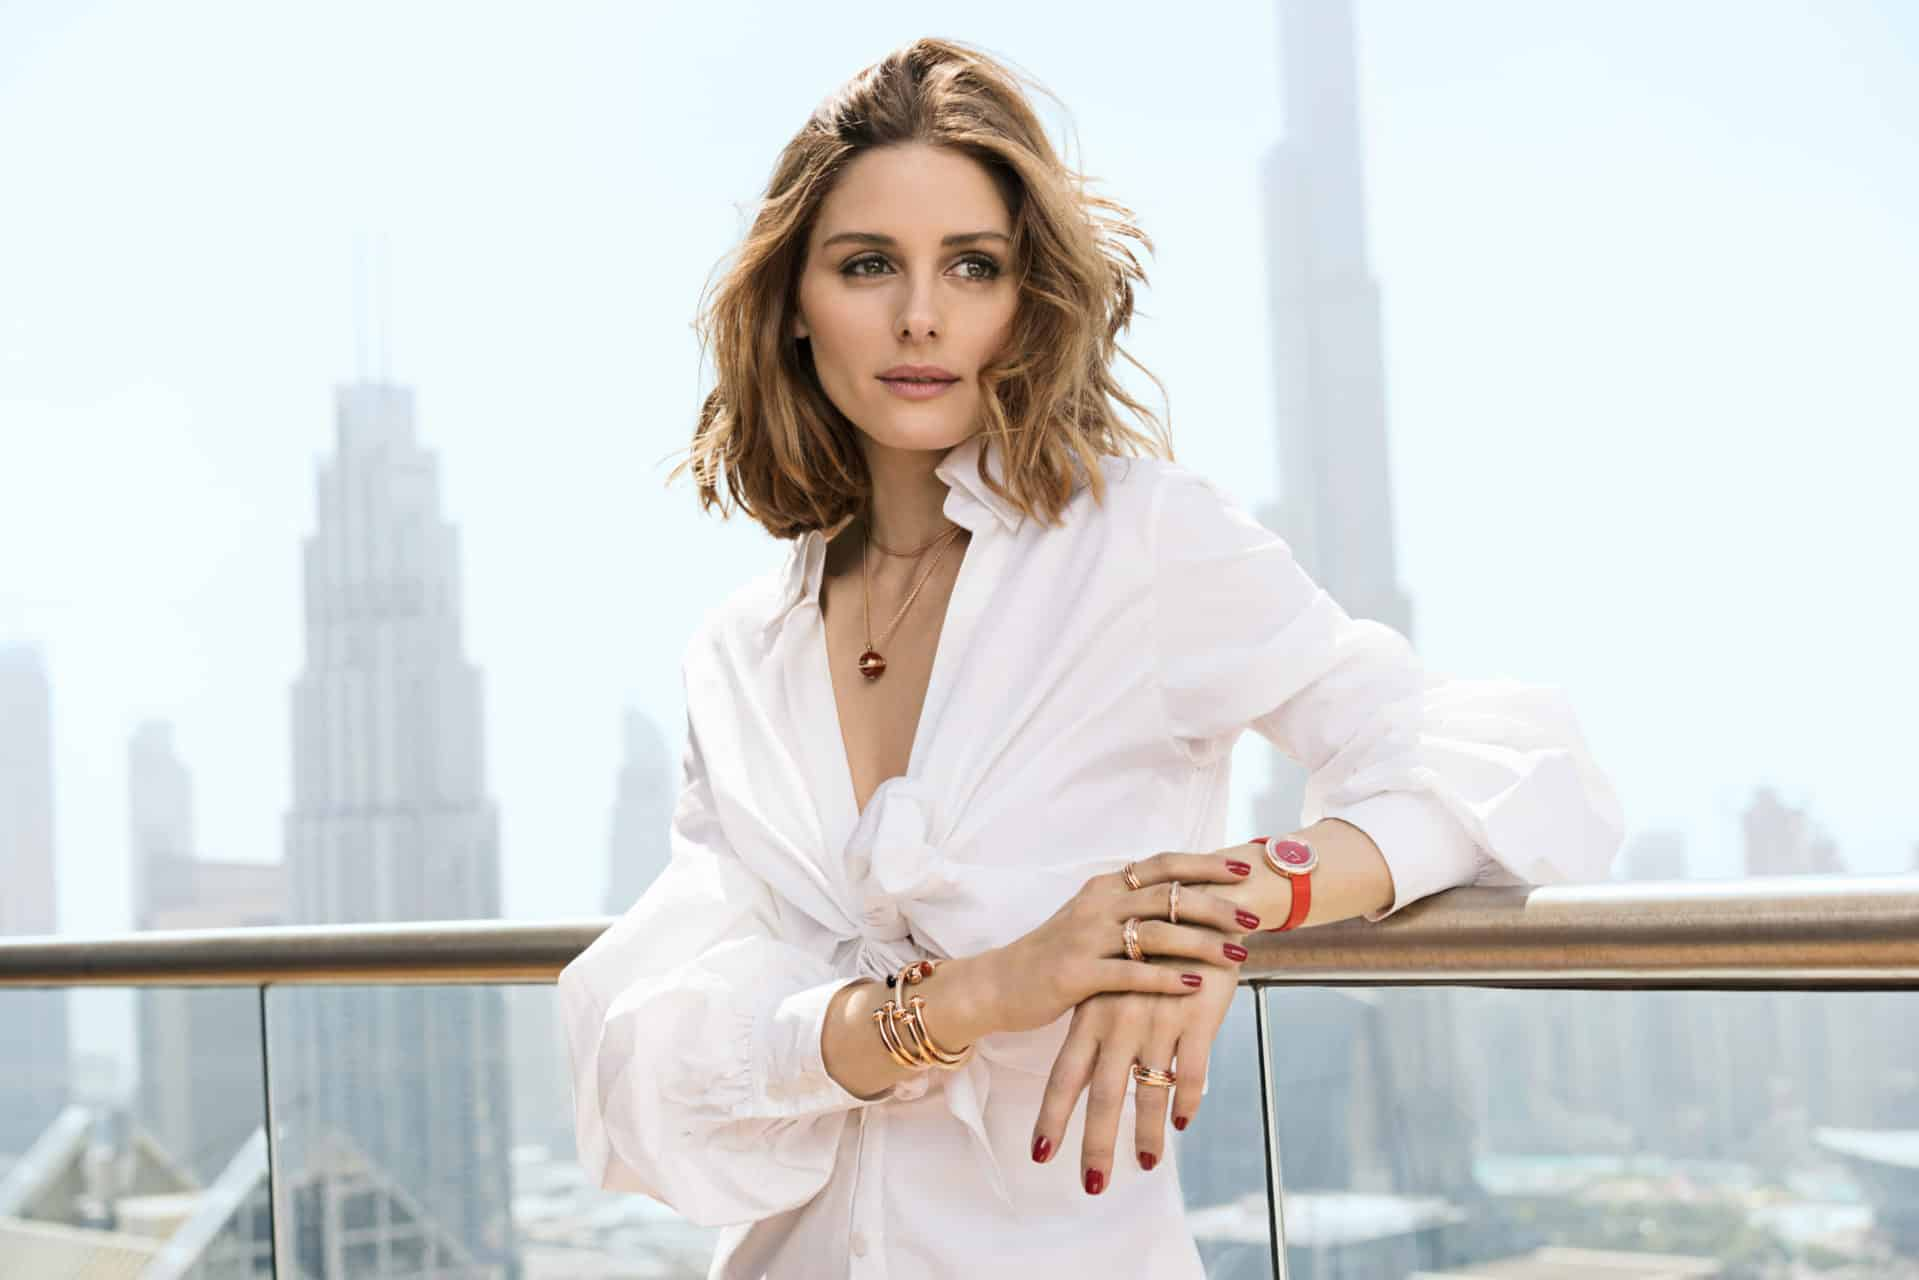 Piaget is honored to announce third year collaboration with International Style Icon Olivia Palermo